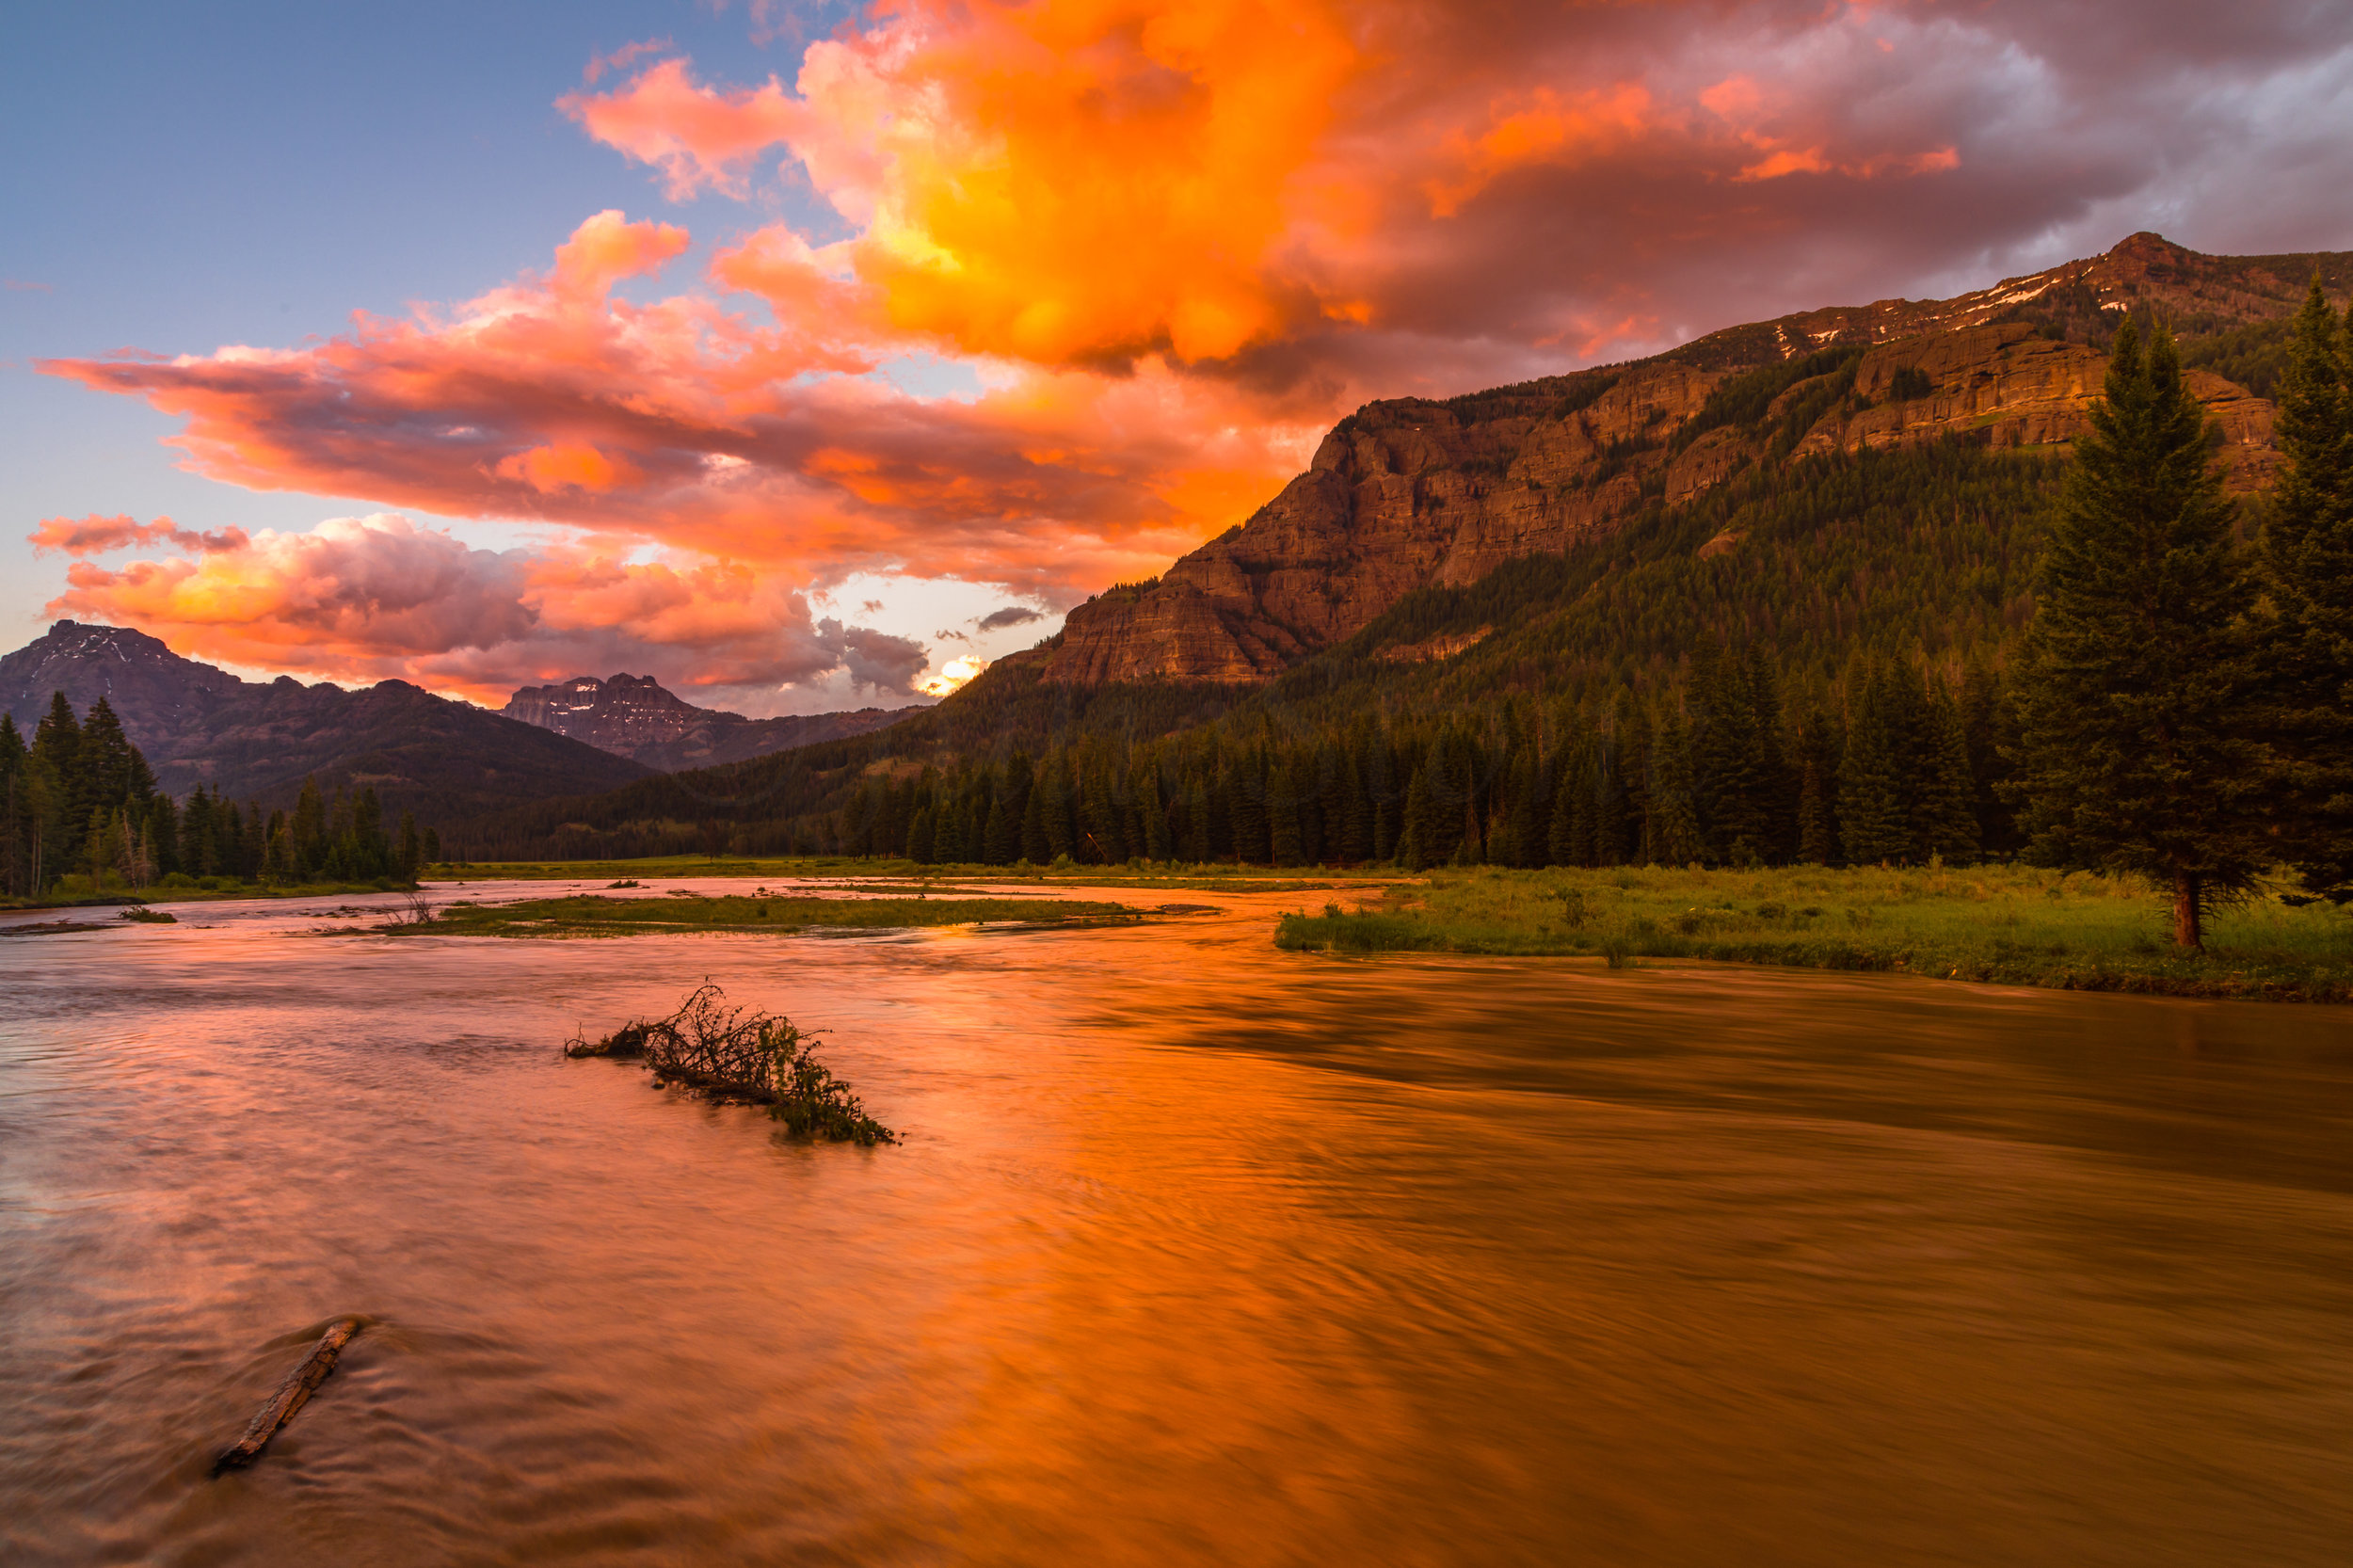 Lamar Valley Sunset, Yellowstone National Park, Image # 6056